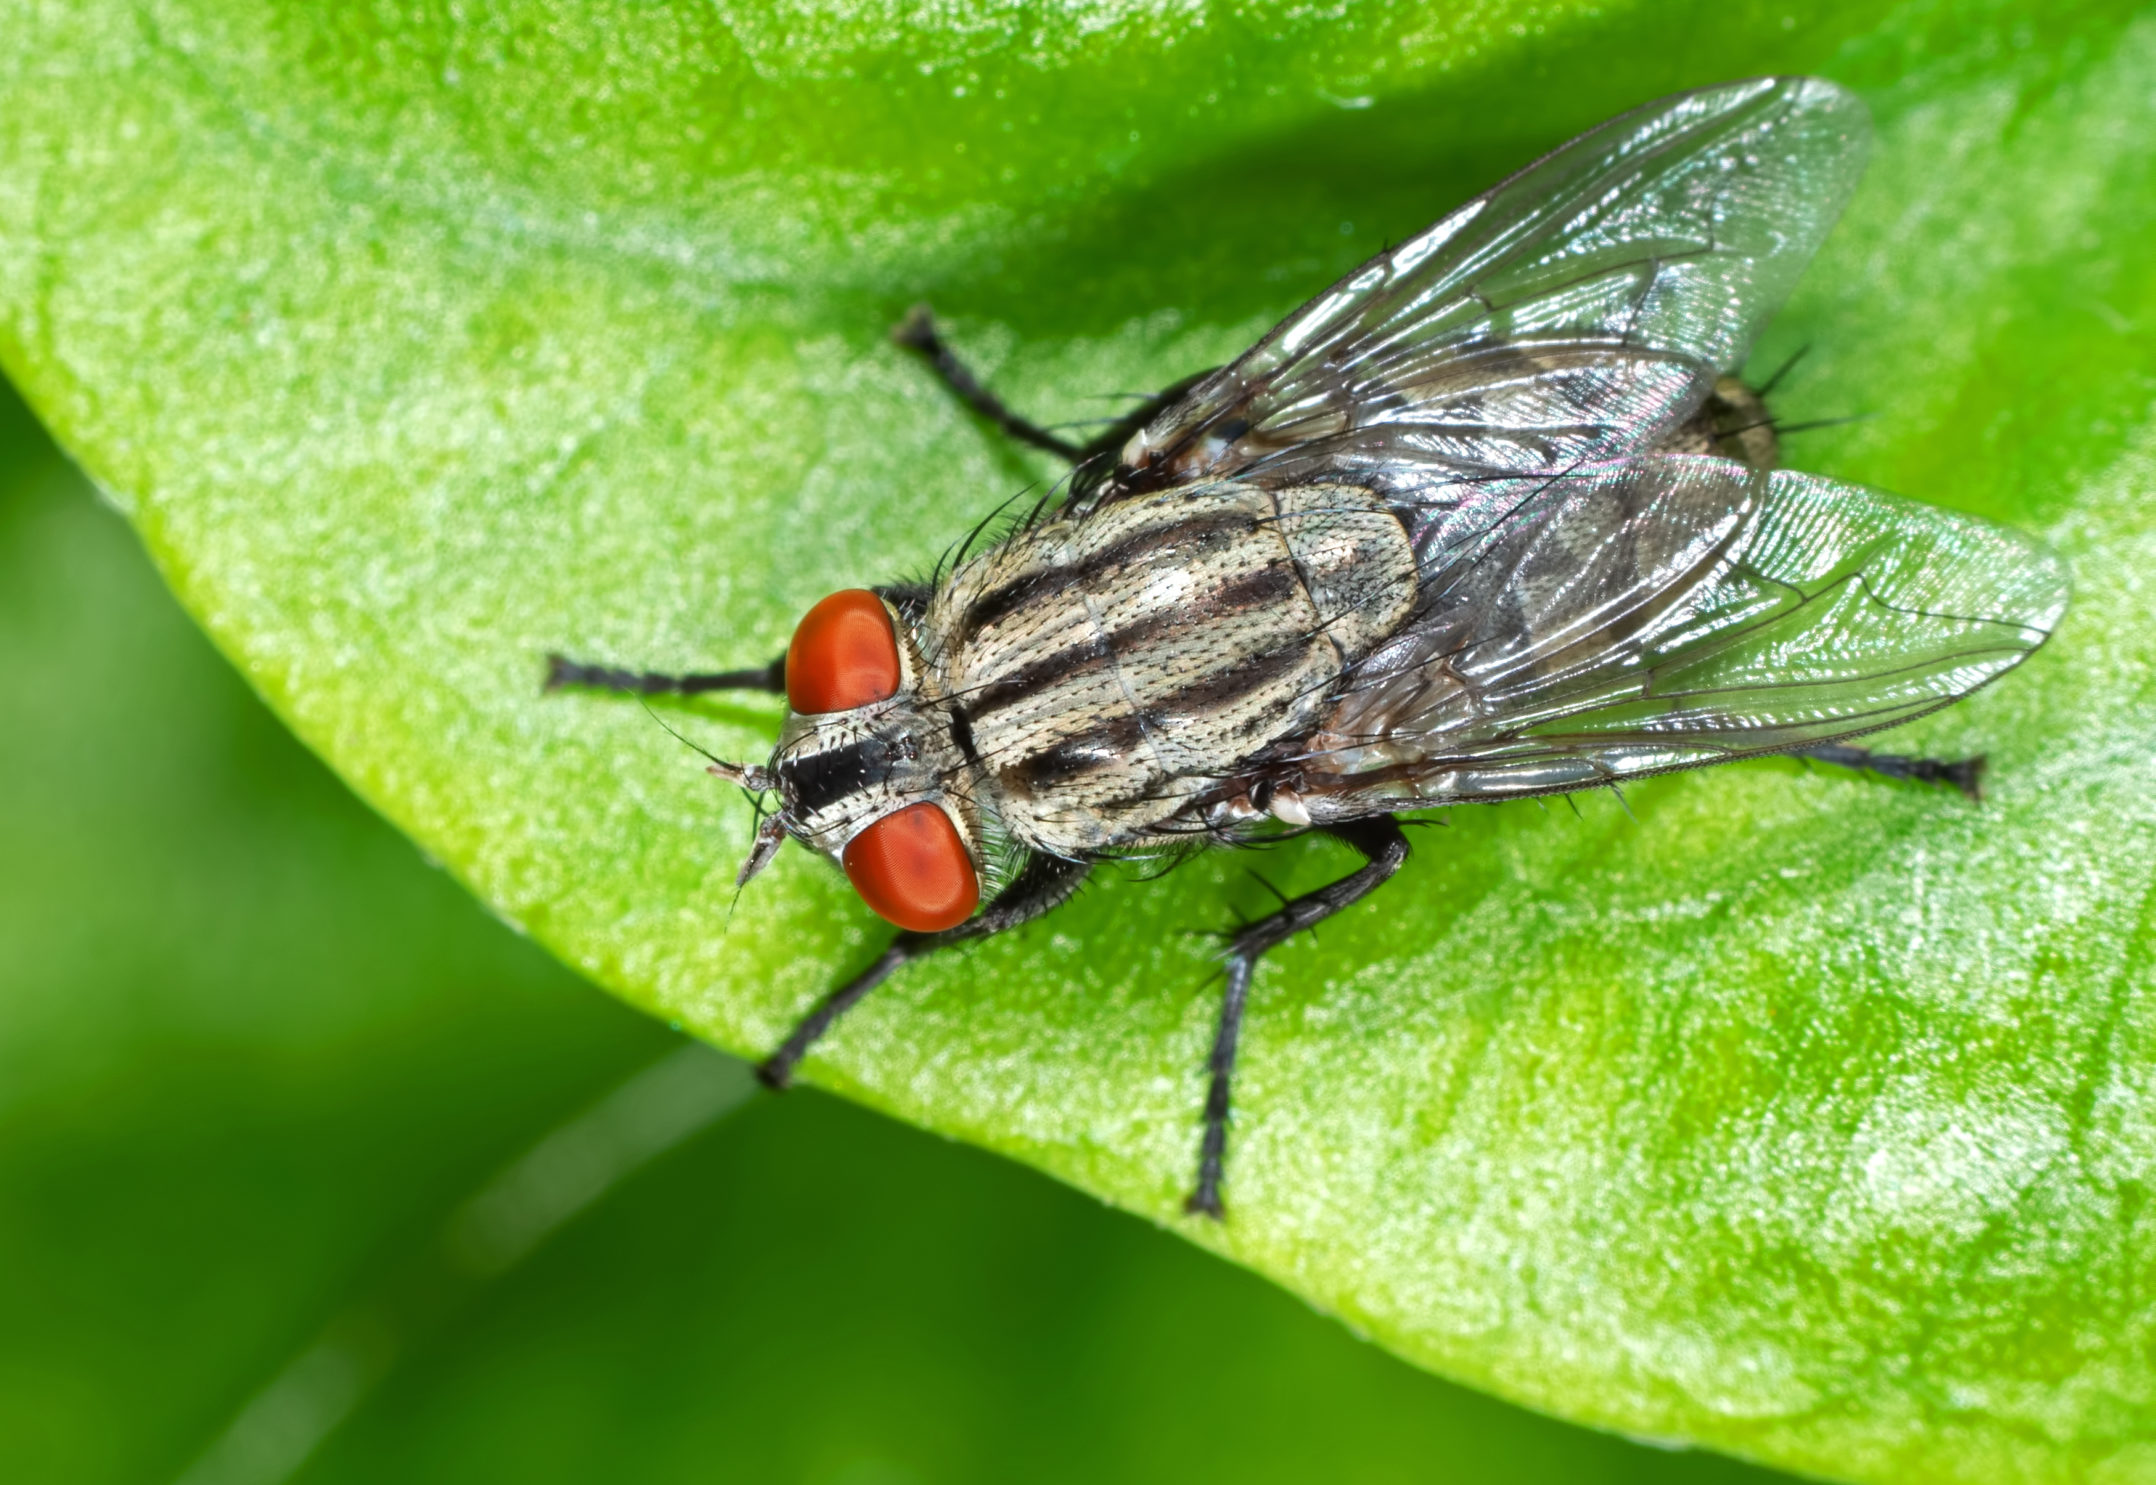 Housefly Can Spread Diseases